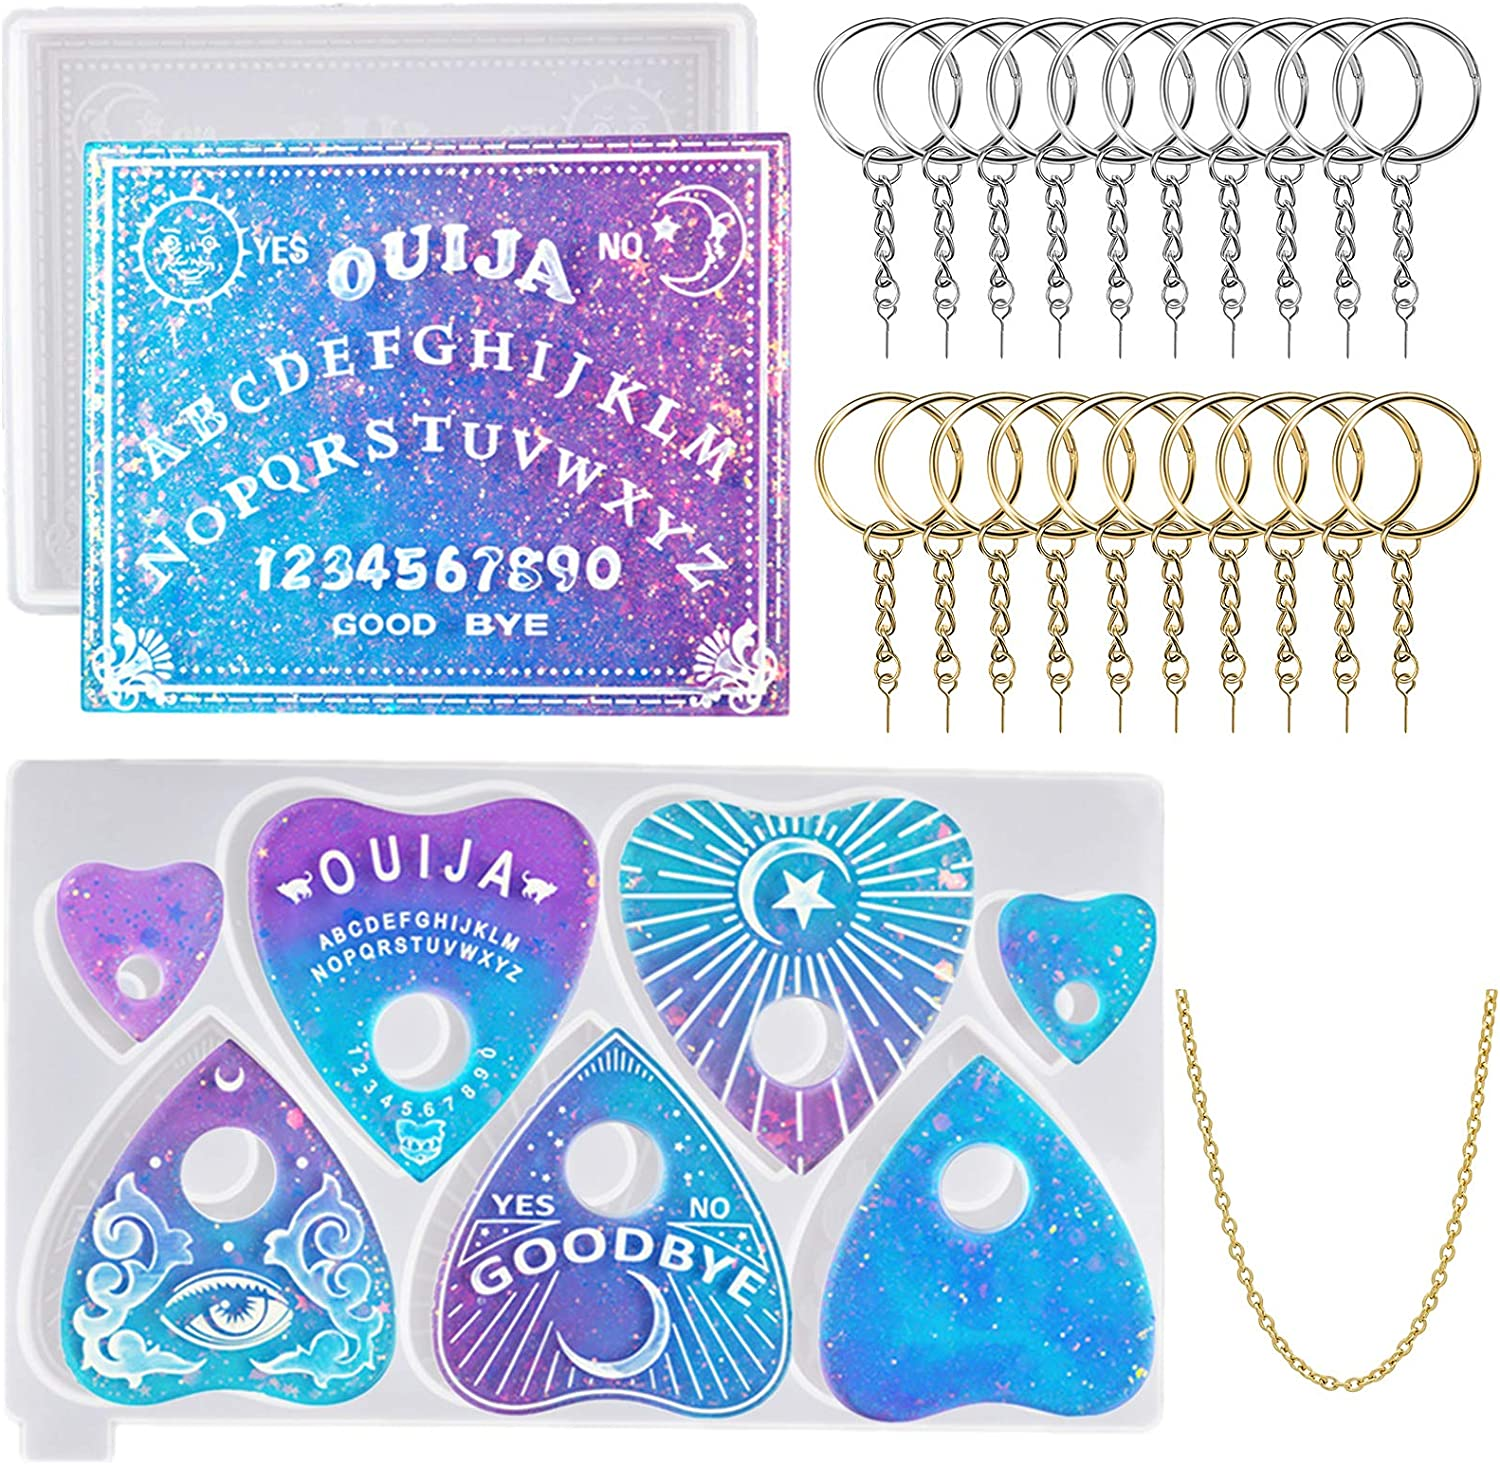 Sales Ouija Board Resin Mold and Planchette Max 74% OFF 2 Silicone for